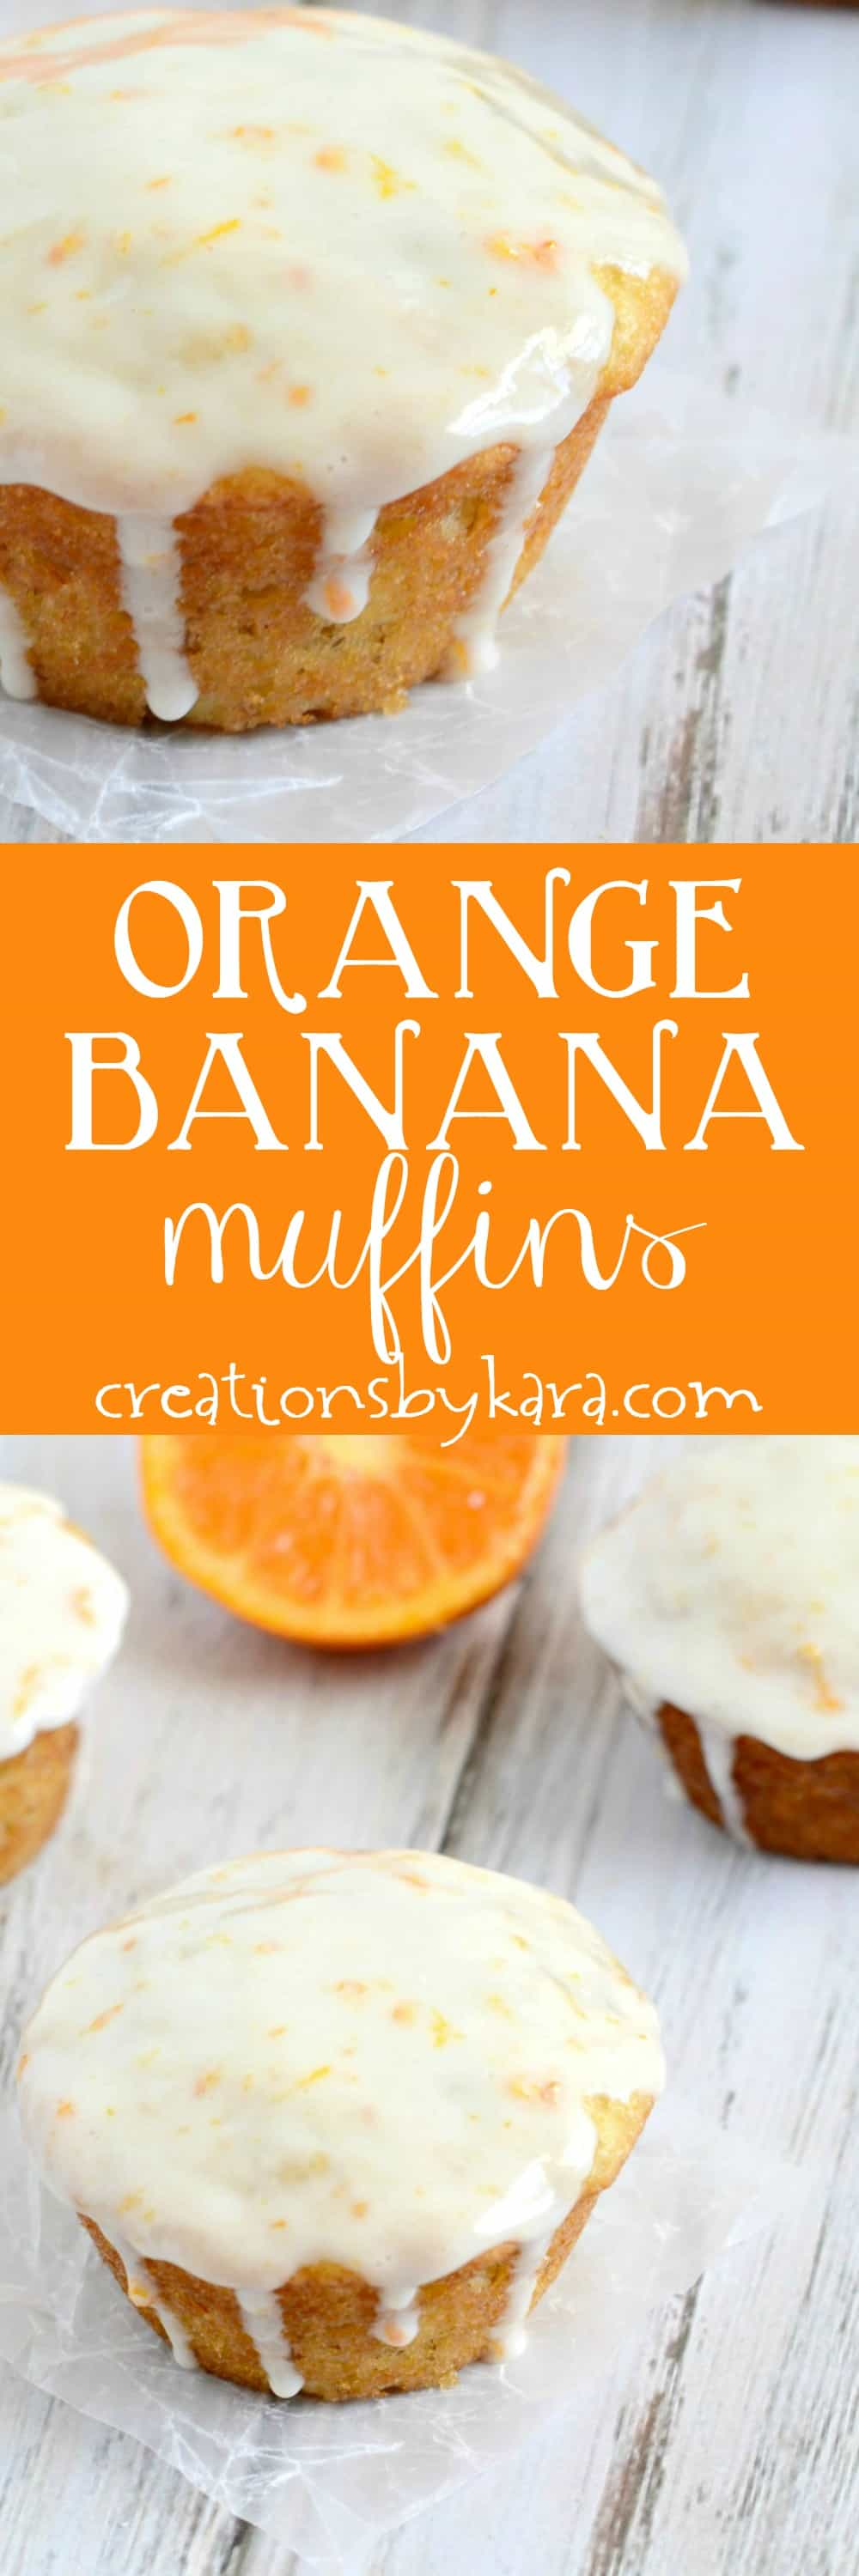 Orange Banana Muffins with Sour Cream Glaze - these banana muffins are far from boring! You will love this muffin recipe.